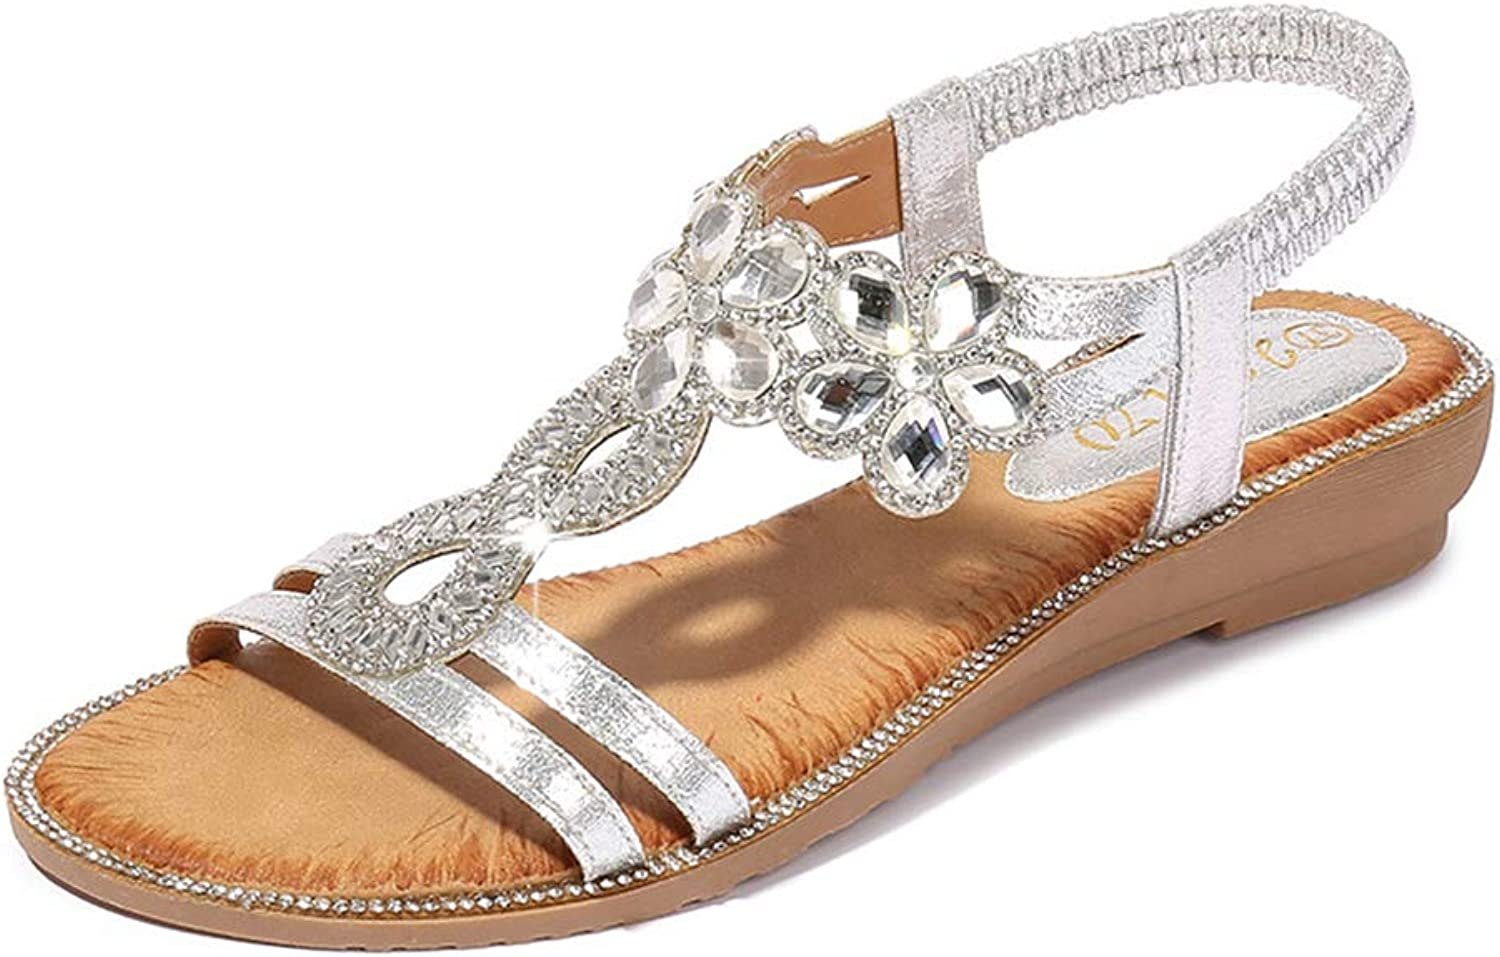 Tuoup Womens Leather Flowers Skidproof Beaded Jeweled Sandals